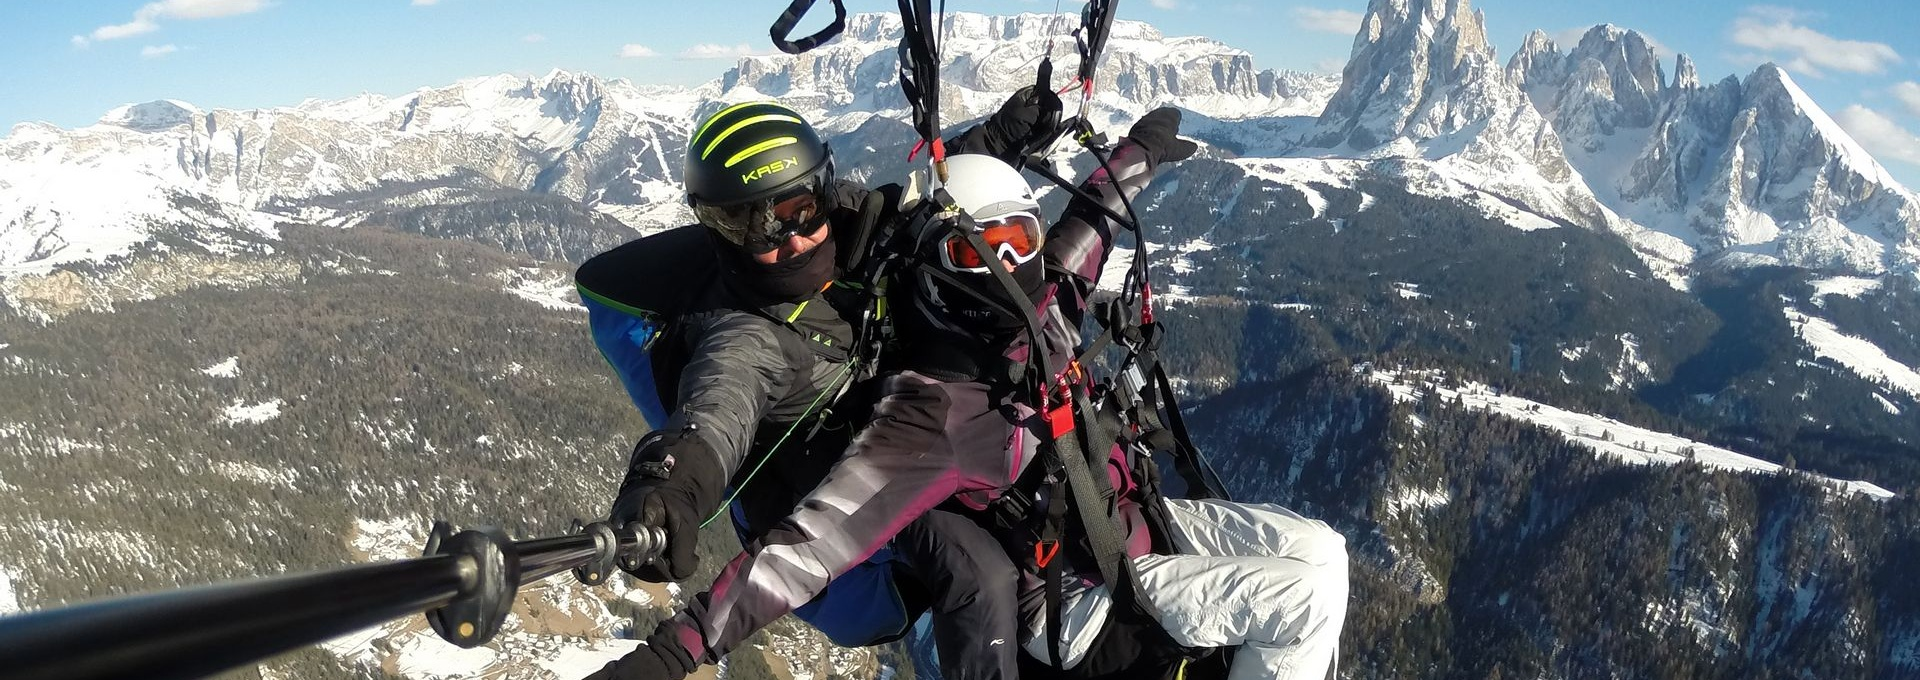 South Tyrol - Winterflights with paraglider